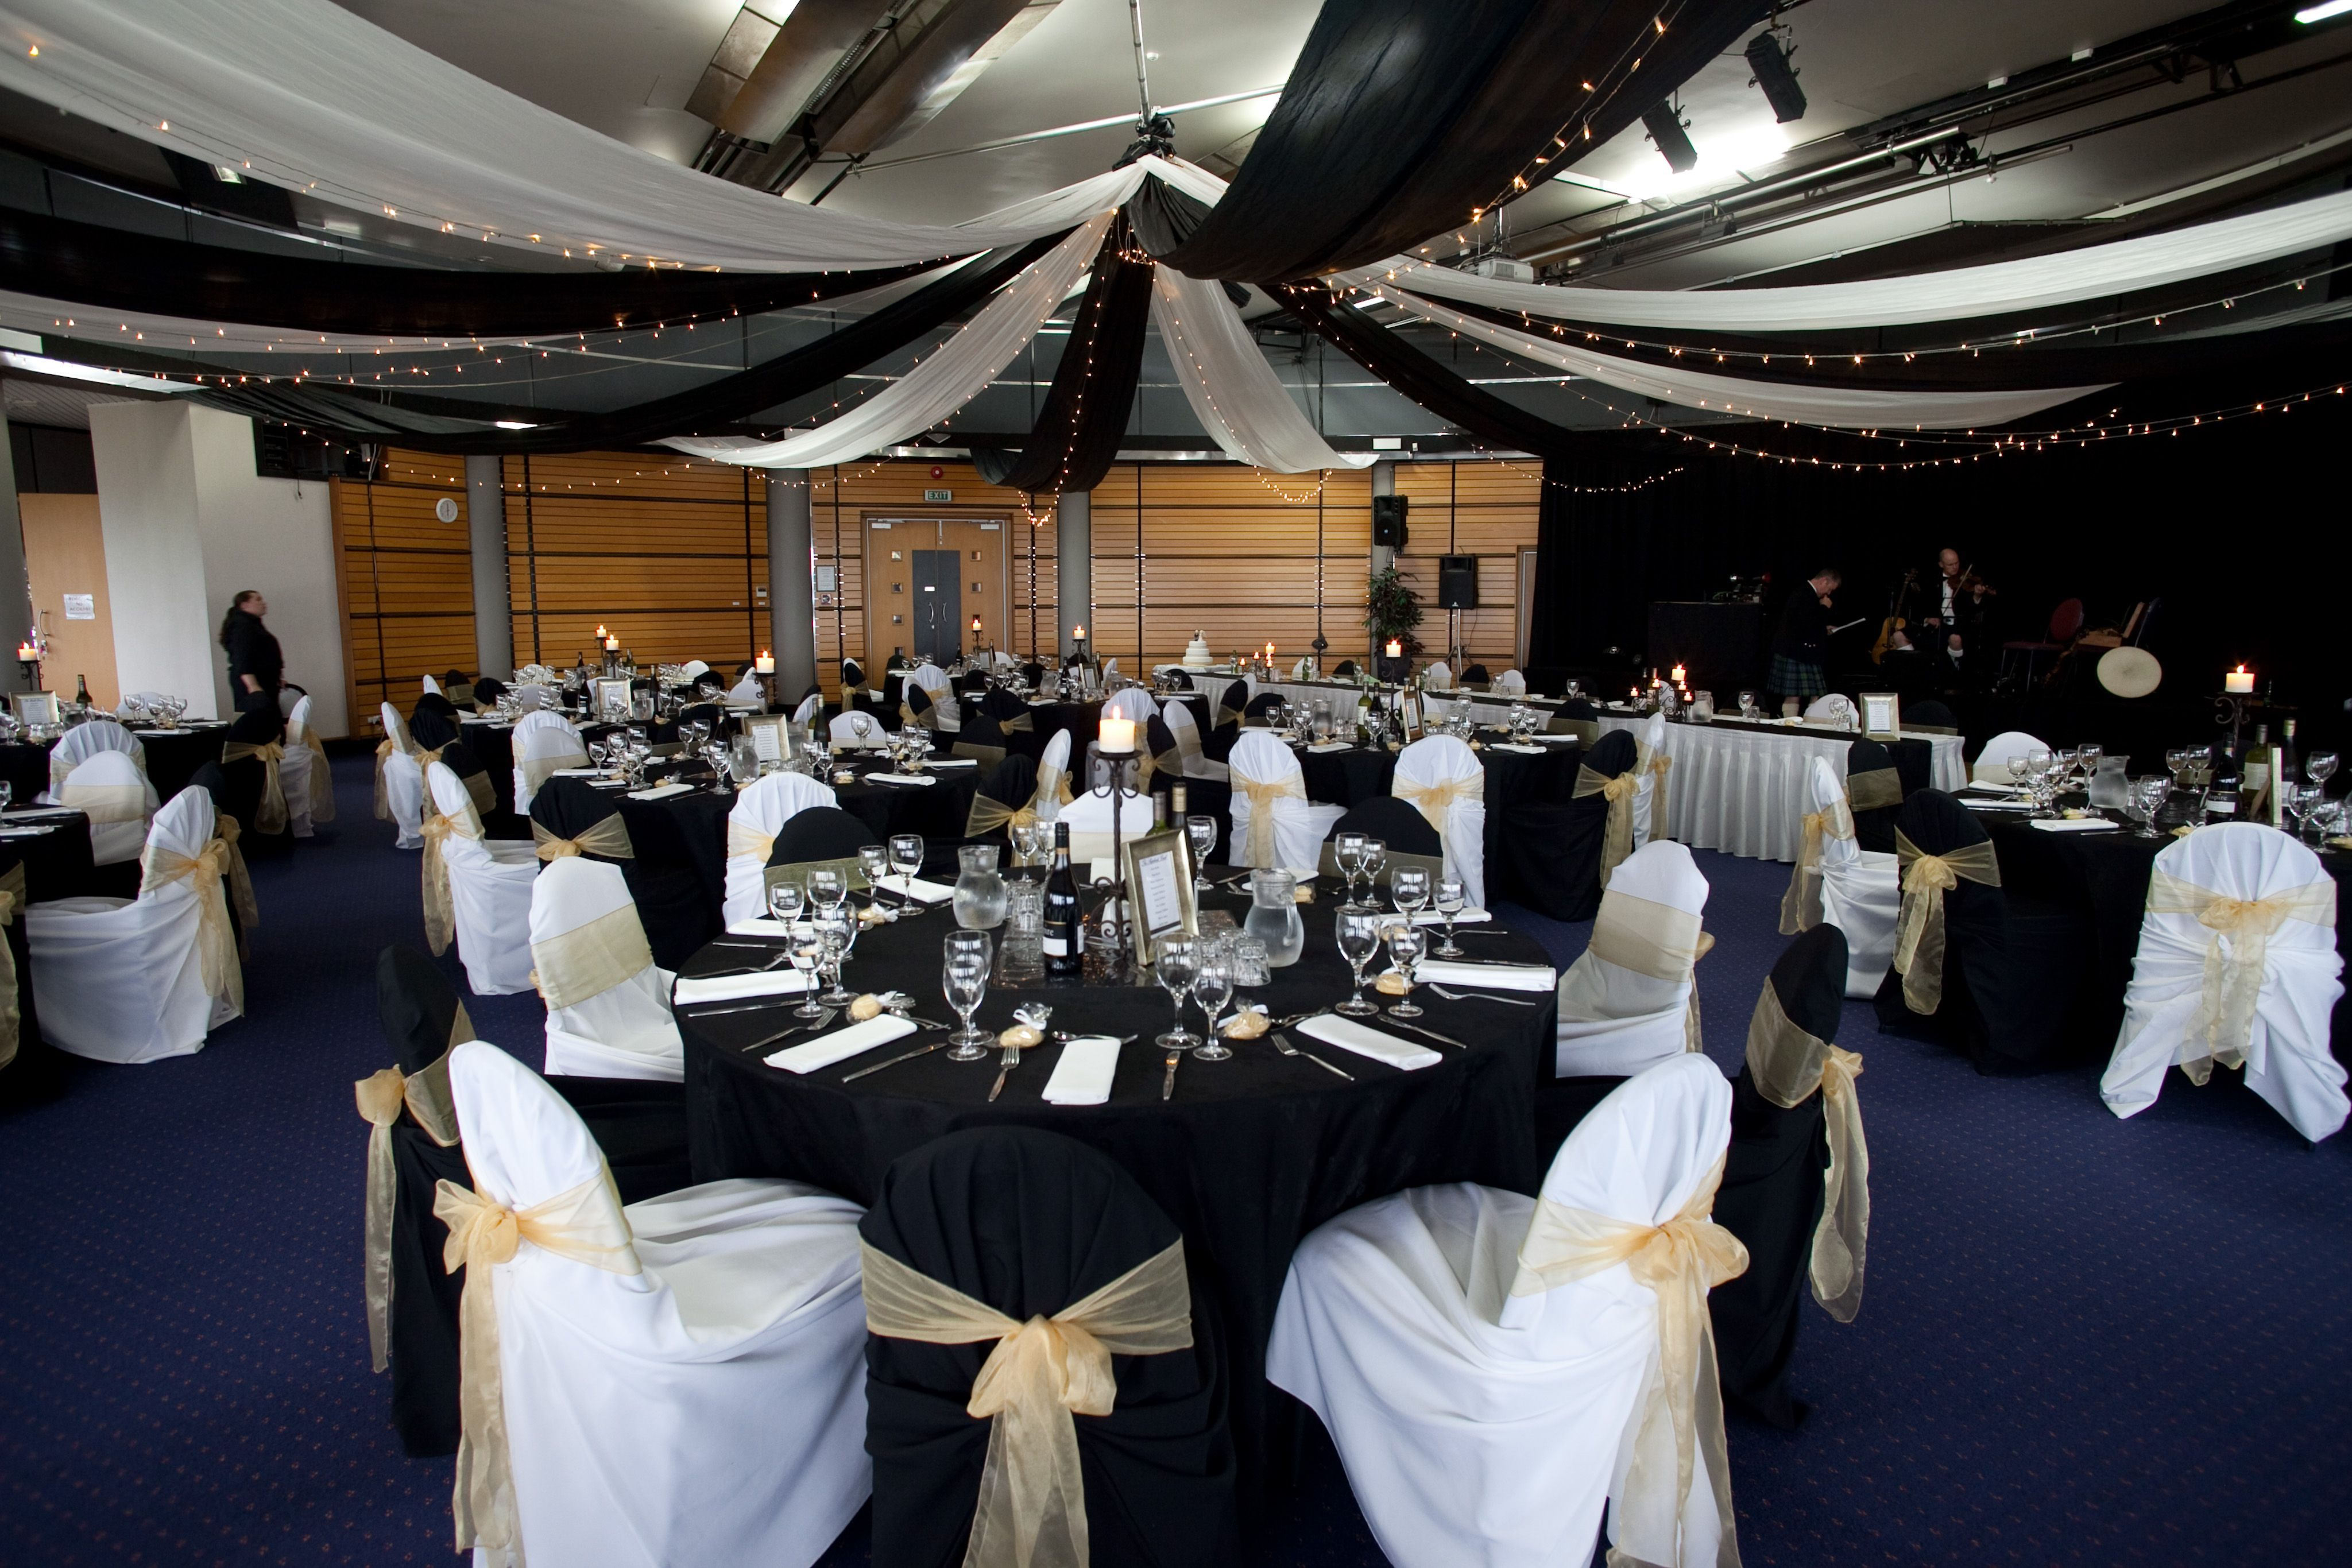 Black & White Themed wedding | Real Wedding Ceiling Canopies ...